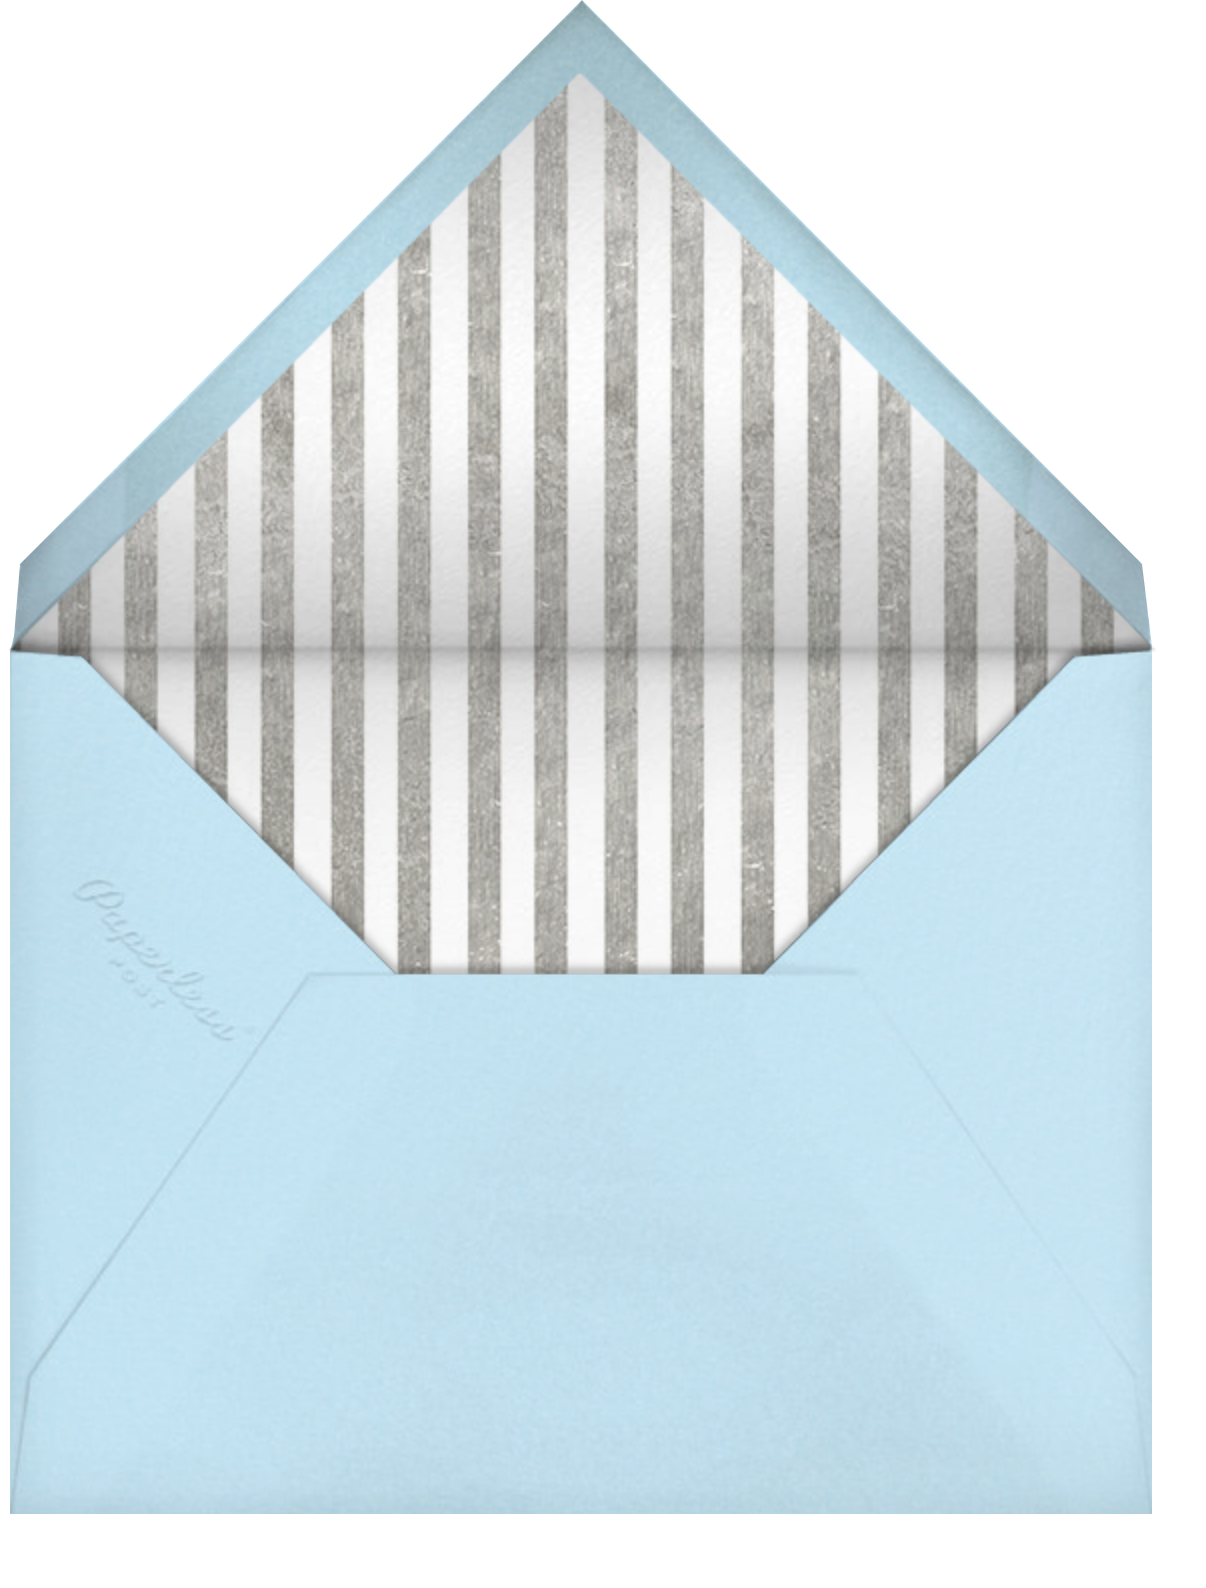 New Year Gallery (Square) - Paperless Post - Envelope